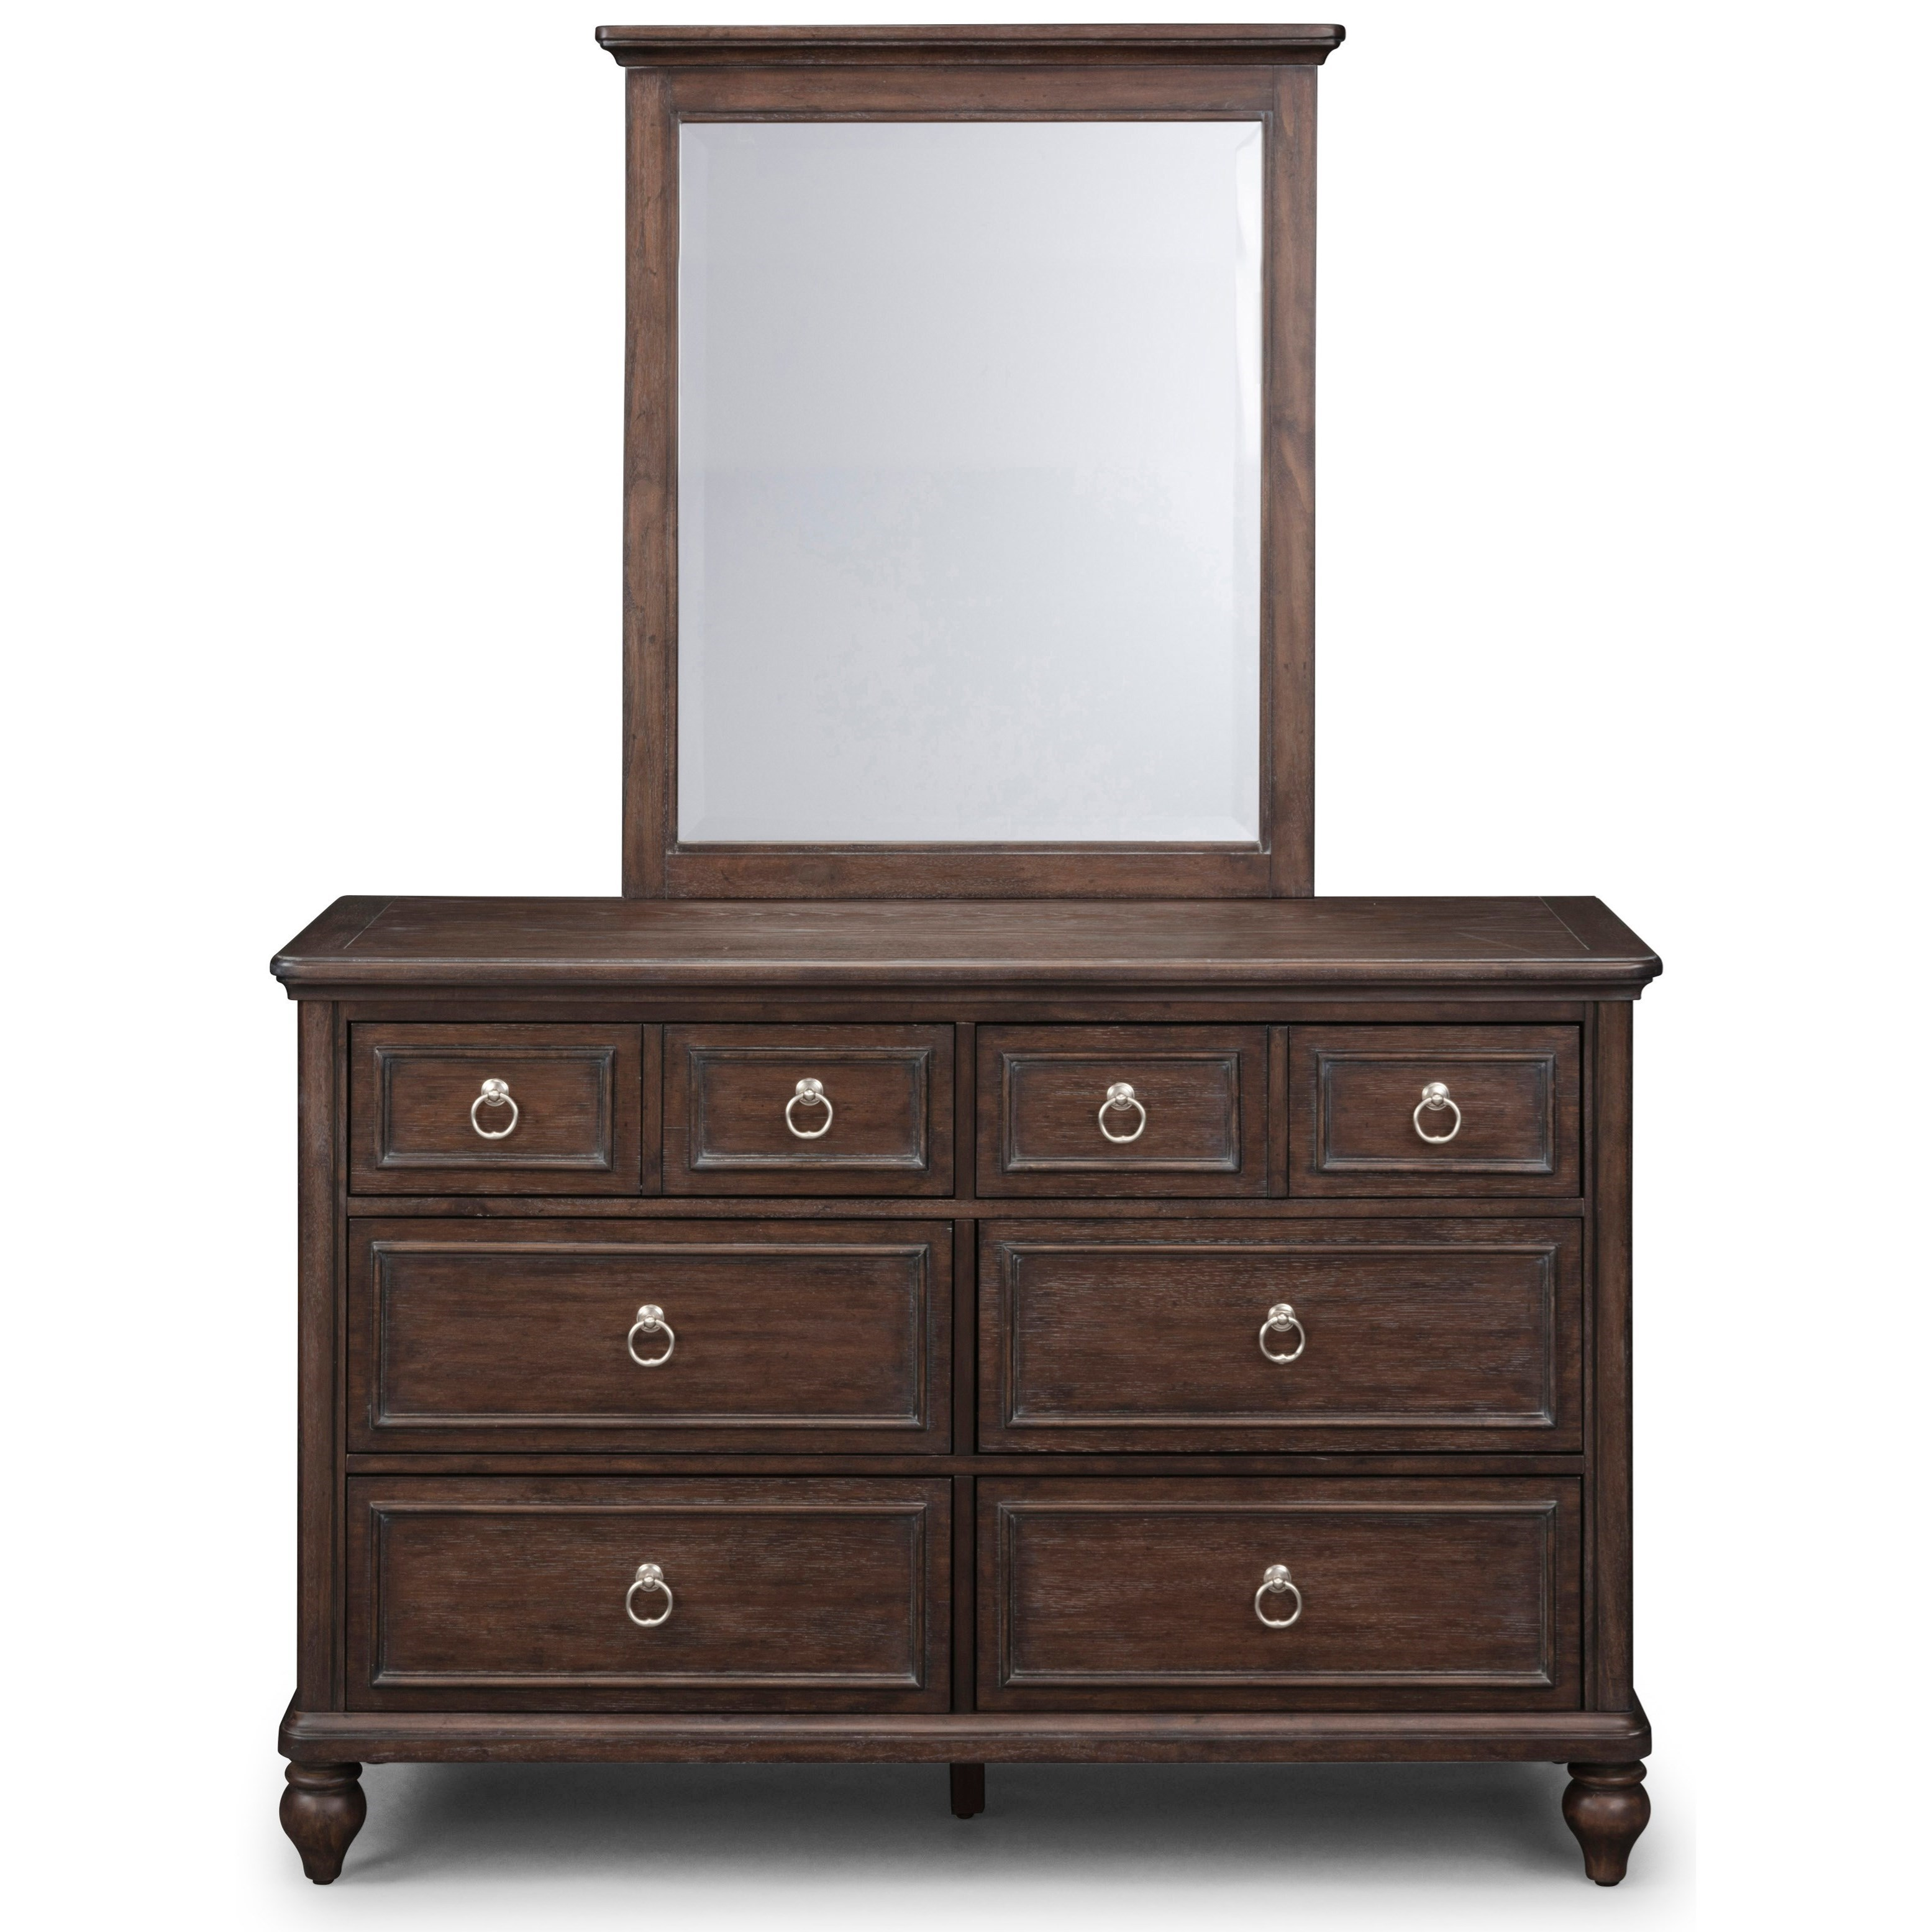 Southport Dresser and Mirror Set by Homestyles at Suburban Furniture